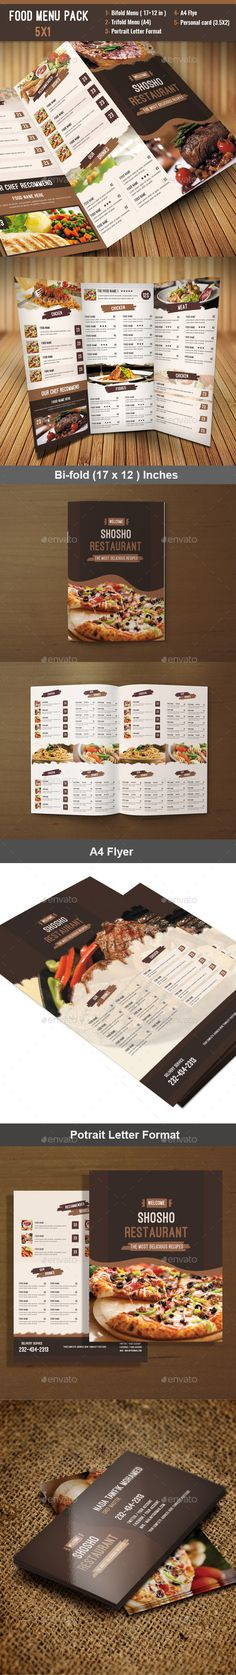 Food Menu Pack — Photoshop PSD #cafe #business • Available here → https://graphicriver.net/item/food-menu-pack/12005905?ref=pxcr